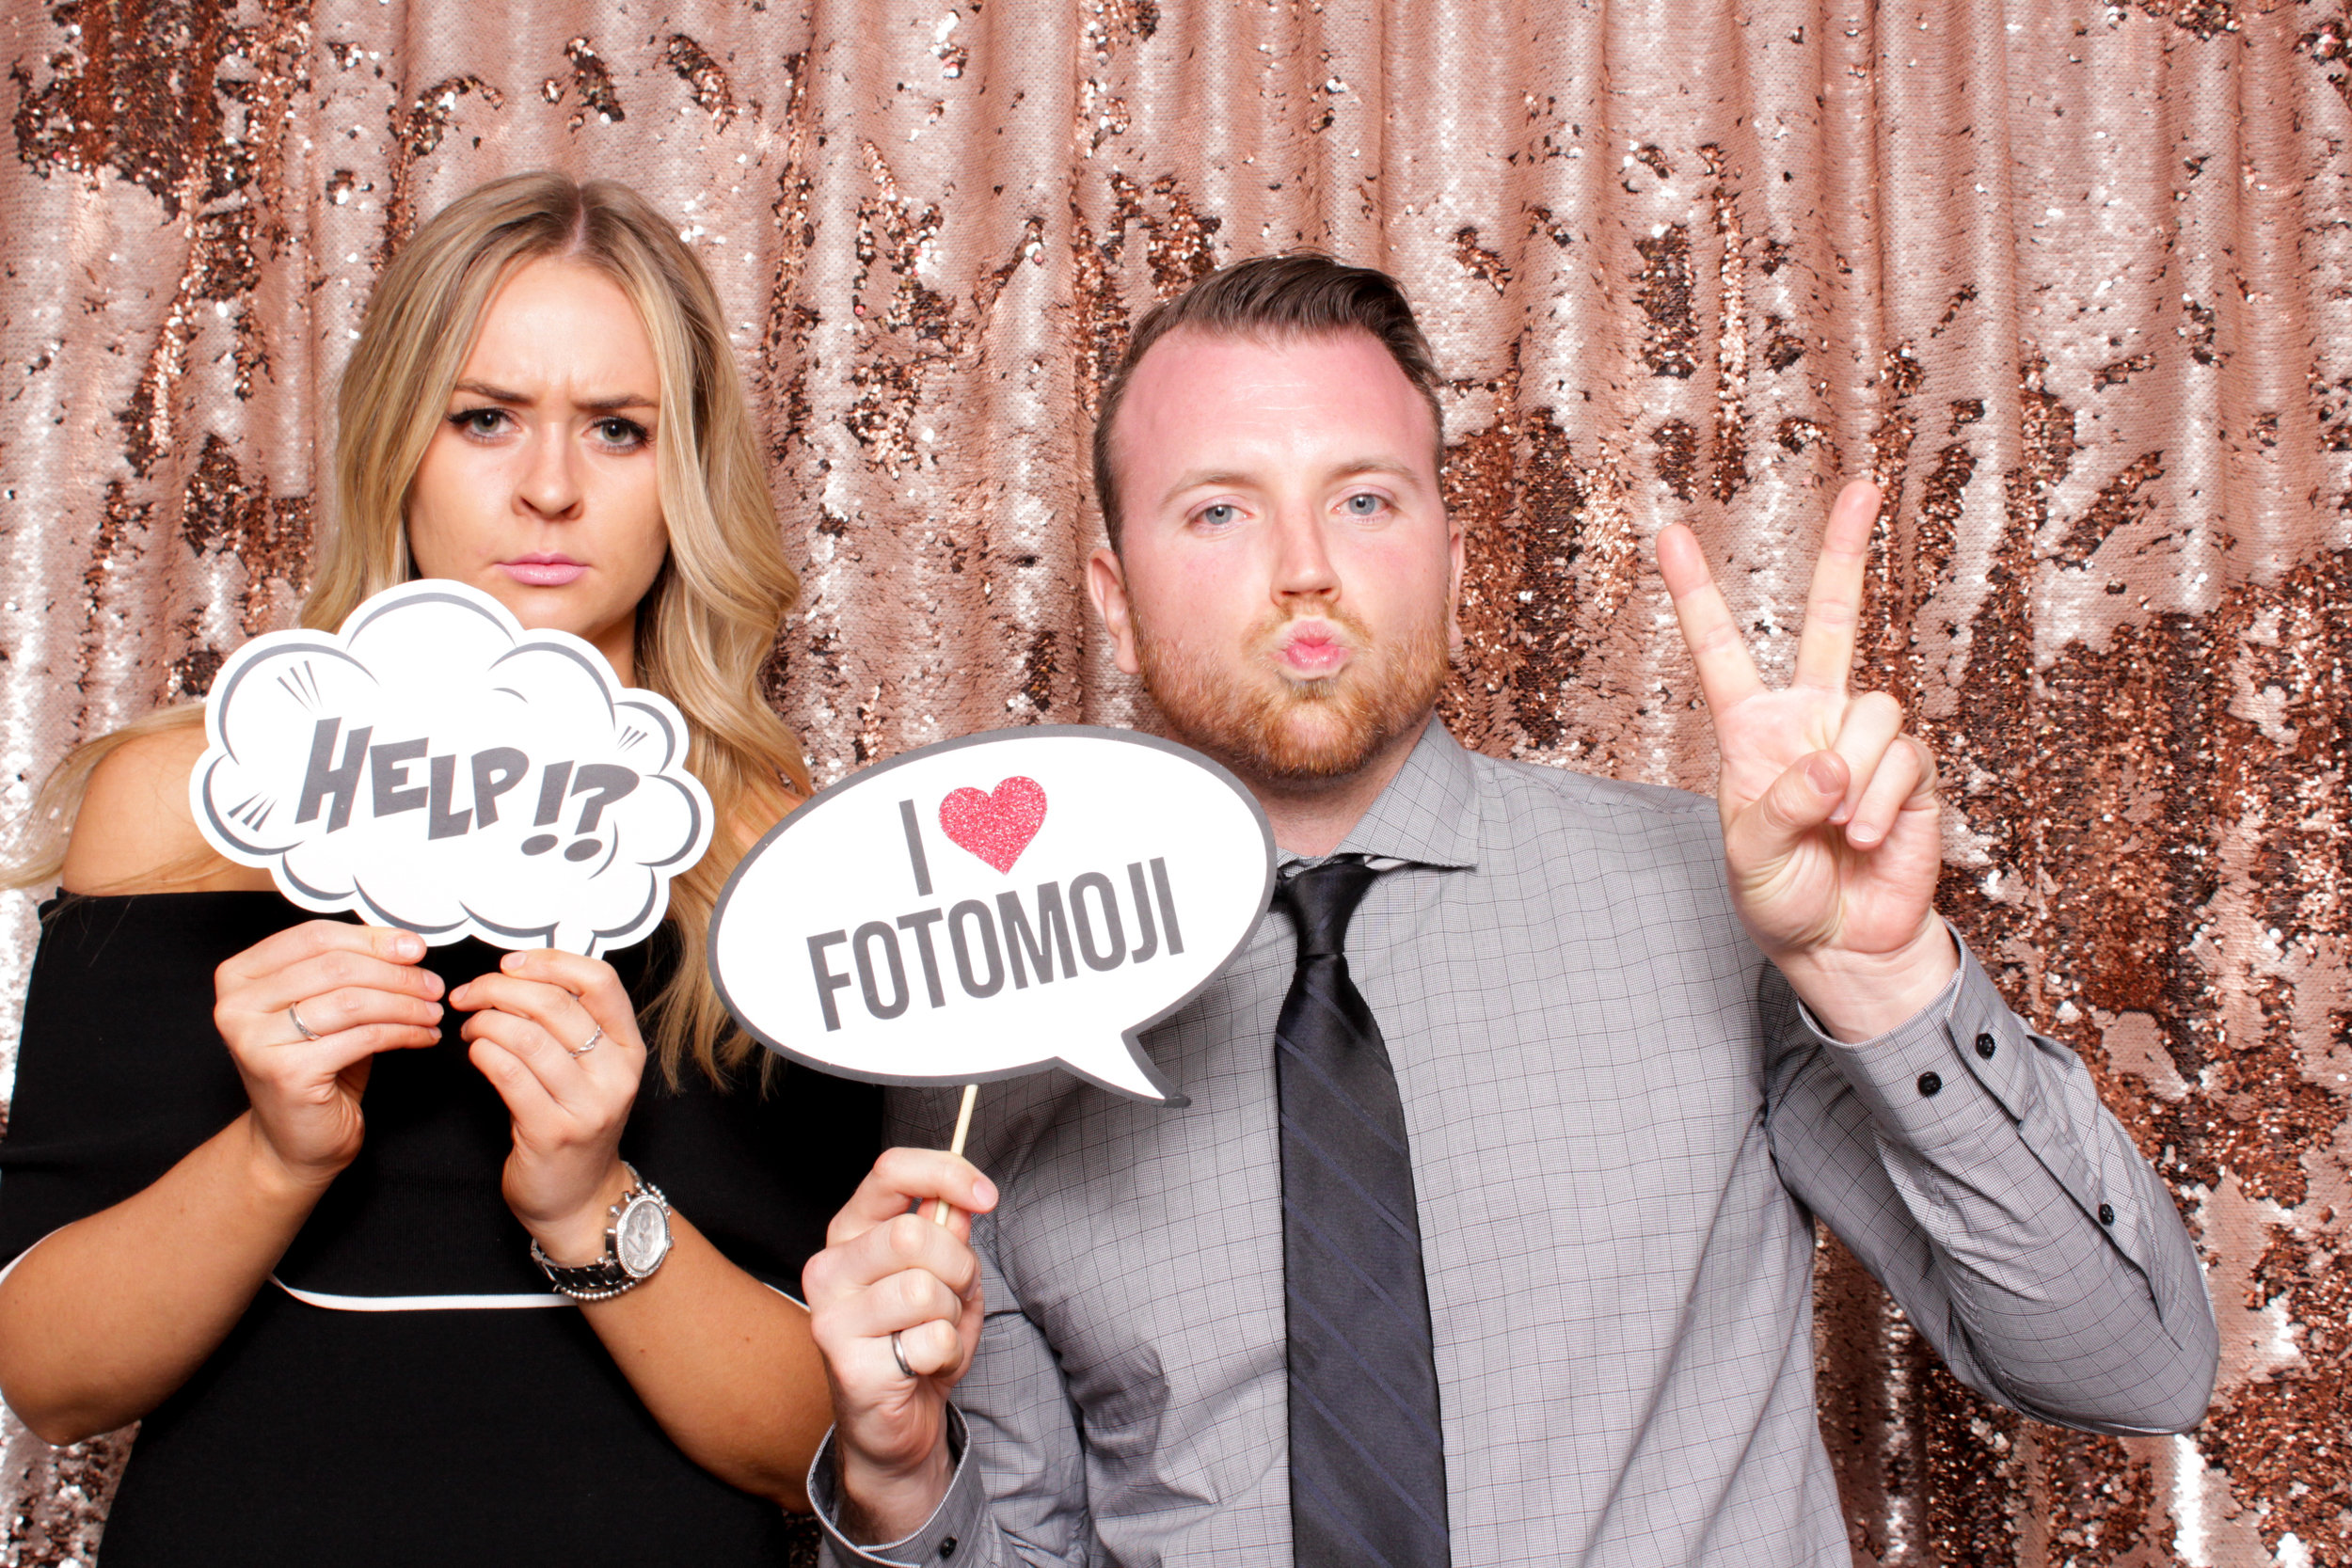 FOTOMOJI_Calgary_Wedding_Photo_Booth_Rental-140.jpg